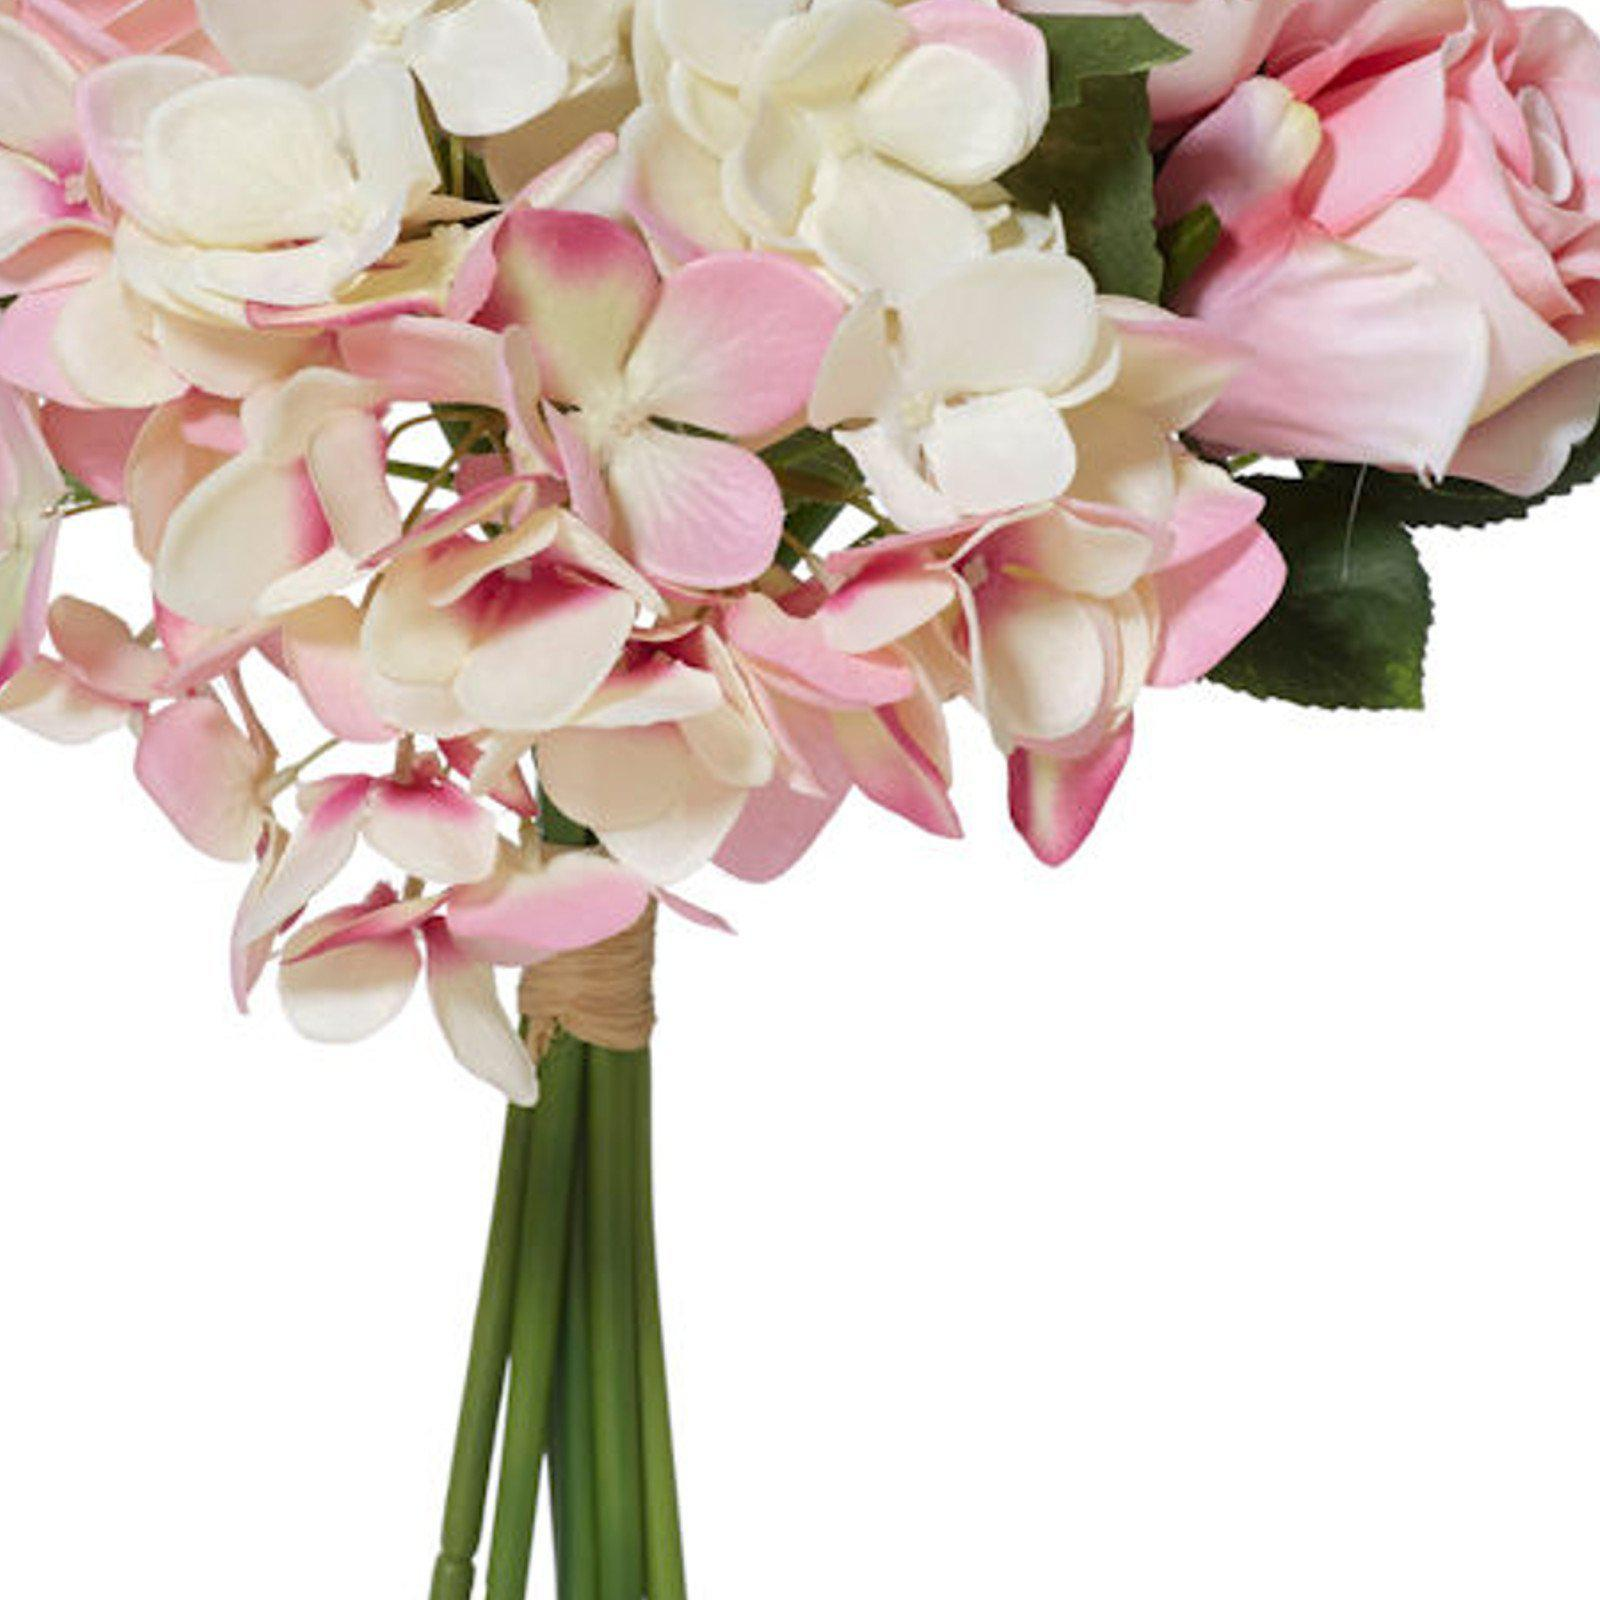 Pink & White Rose/Peony Bouquet - Artificial Flower Arrangement-artificial flowers and plants-Chef's Quality Cookware